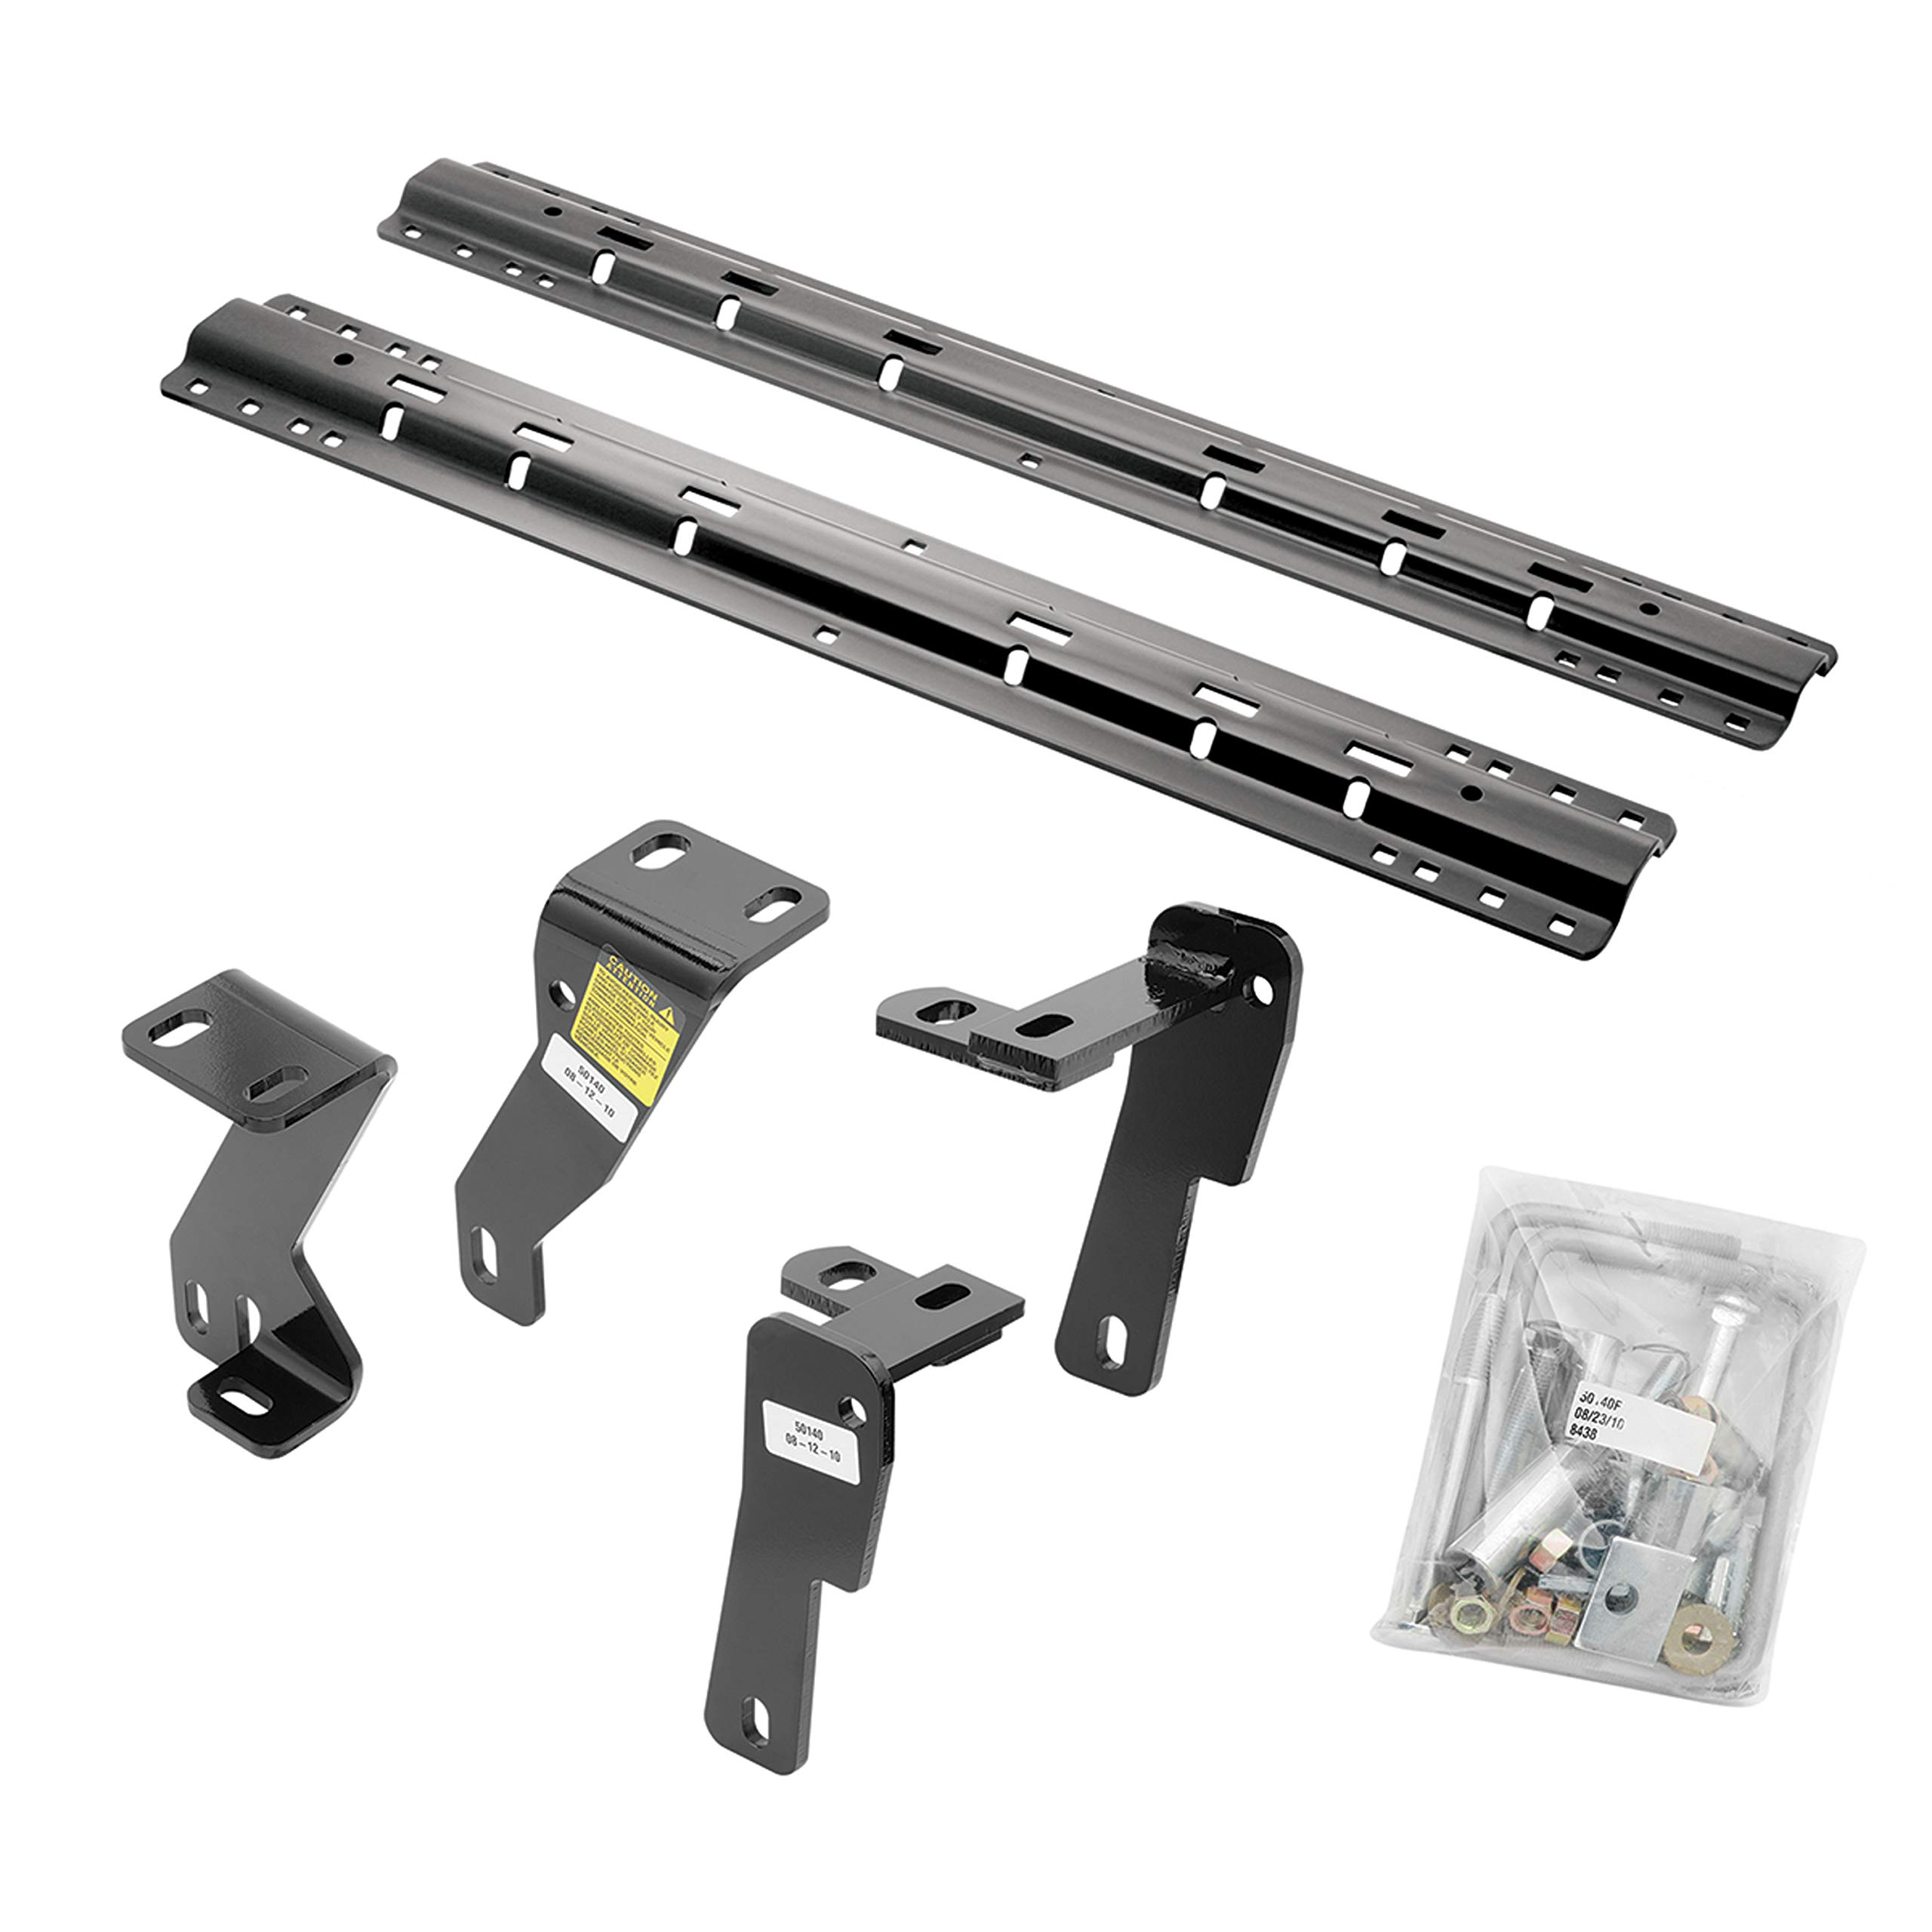 Draw-Tite Rails and Bracket Quick Install Kit (Includes #50140 and #58058) by Draw-Tite